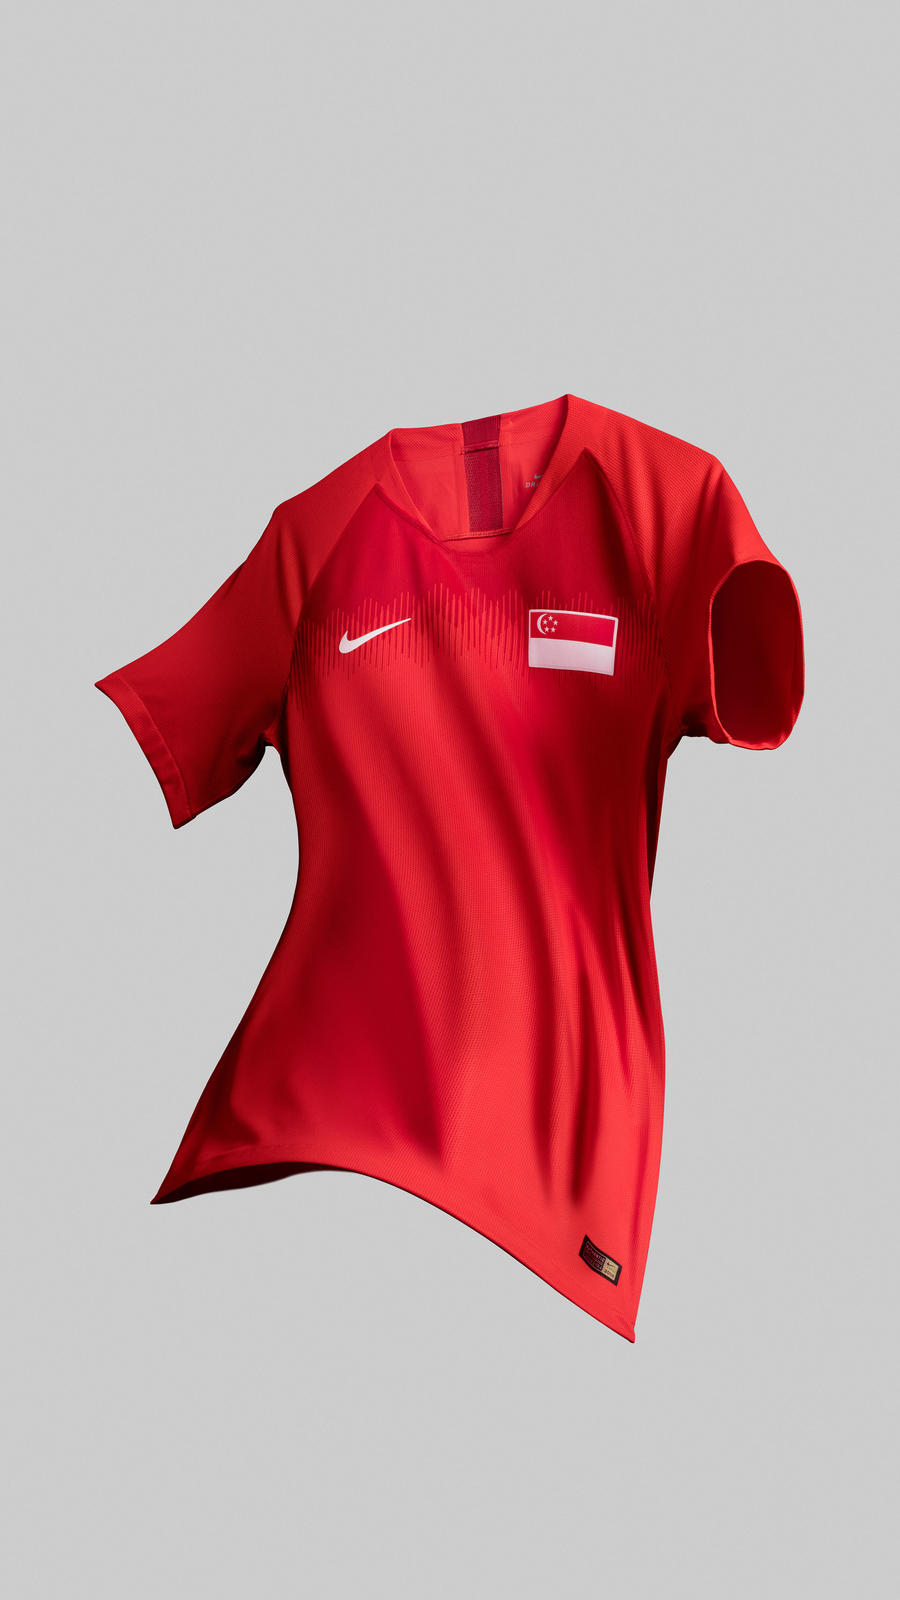 e53a12421 3 Things Singapore's History Can Teach You About Its New National Team Kits  1